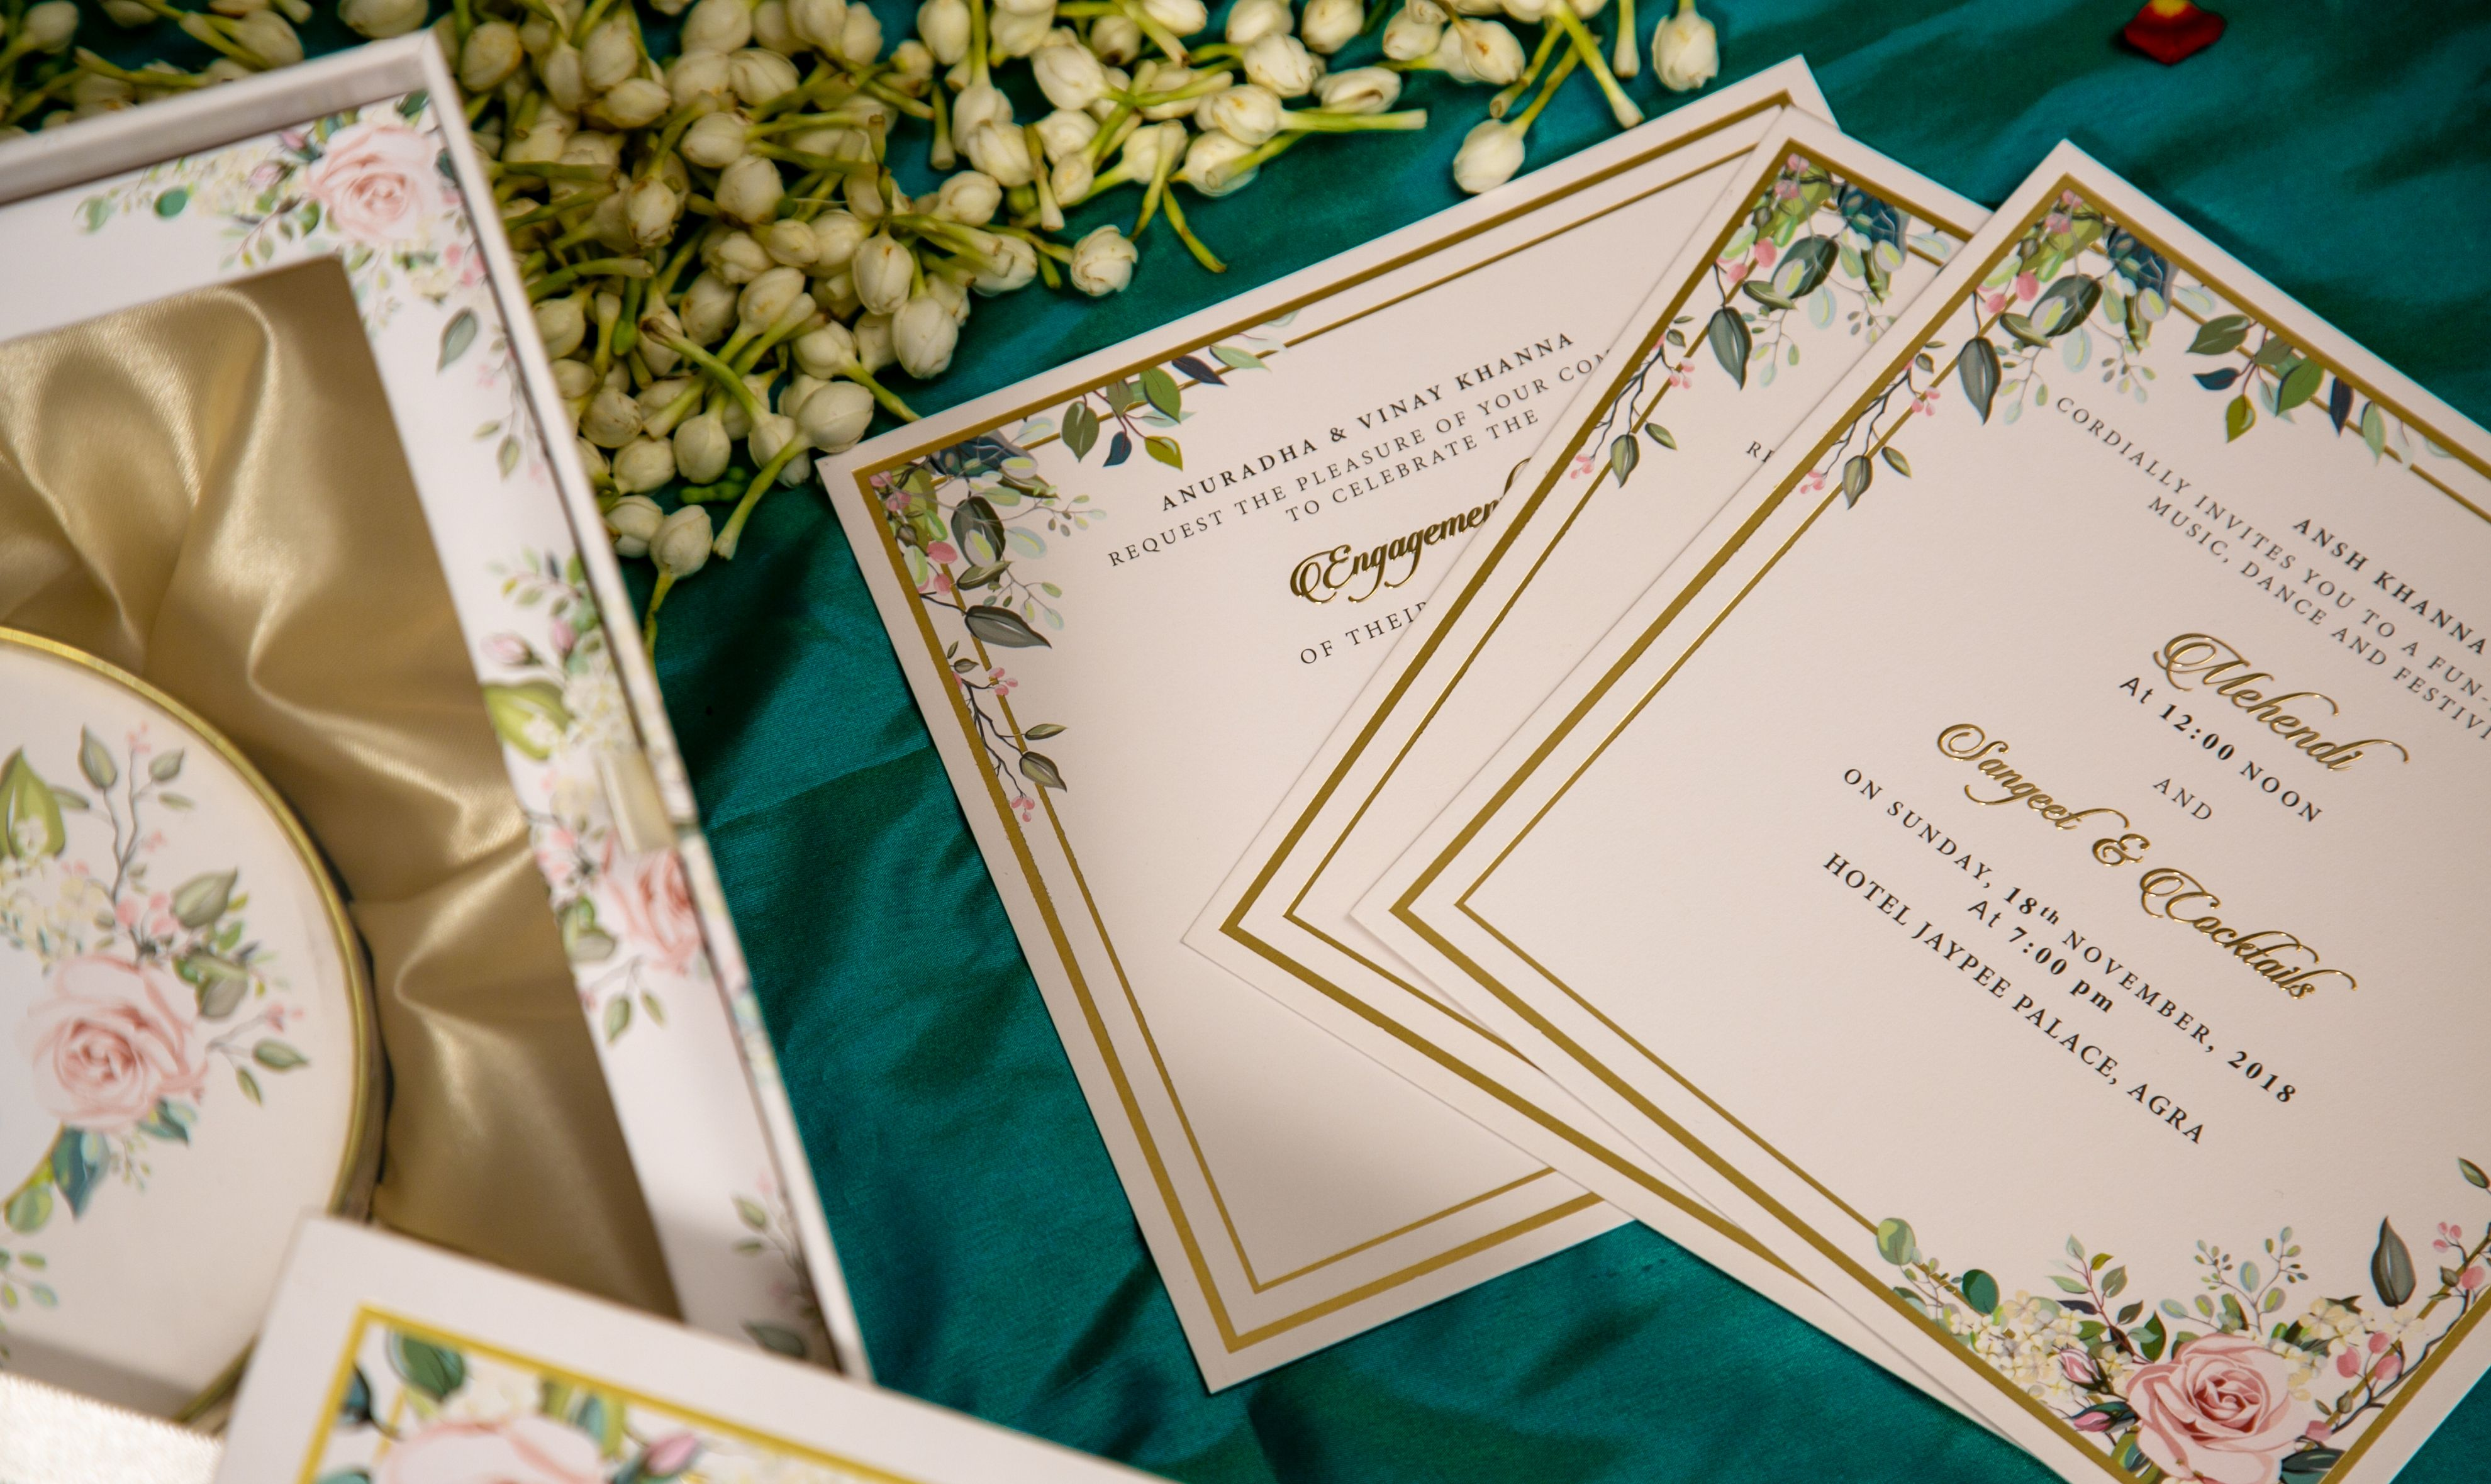 Indian wedding card with dry fruits as a boxed invitation